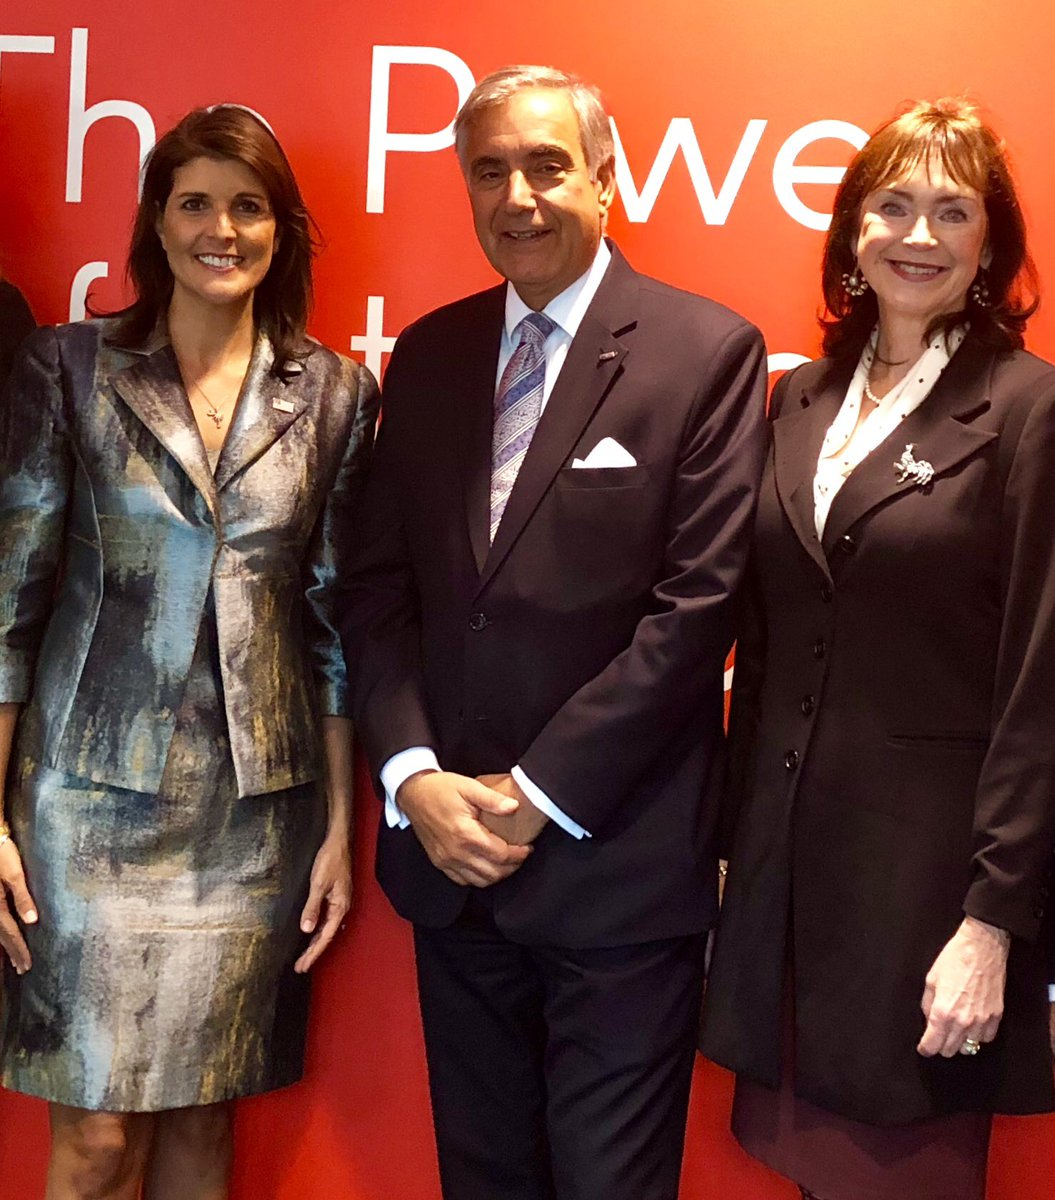 So pleased that Patricia and I met with Amb. Nikki Haley today in NYC. Both of us face career changes but are optimistic. Grateful for her service to SC and the USA. <br>http://pic.twitter.com/T03XnshuZg